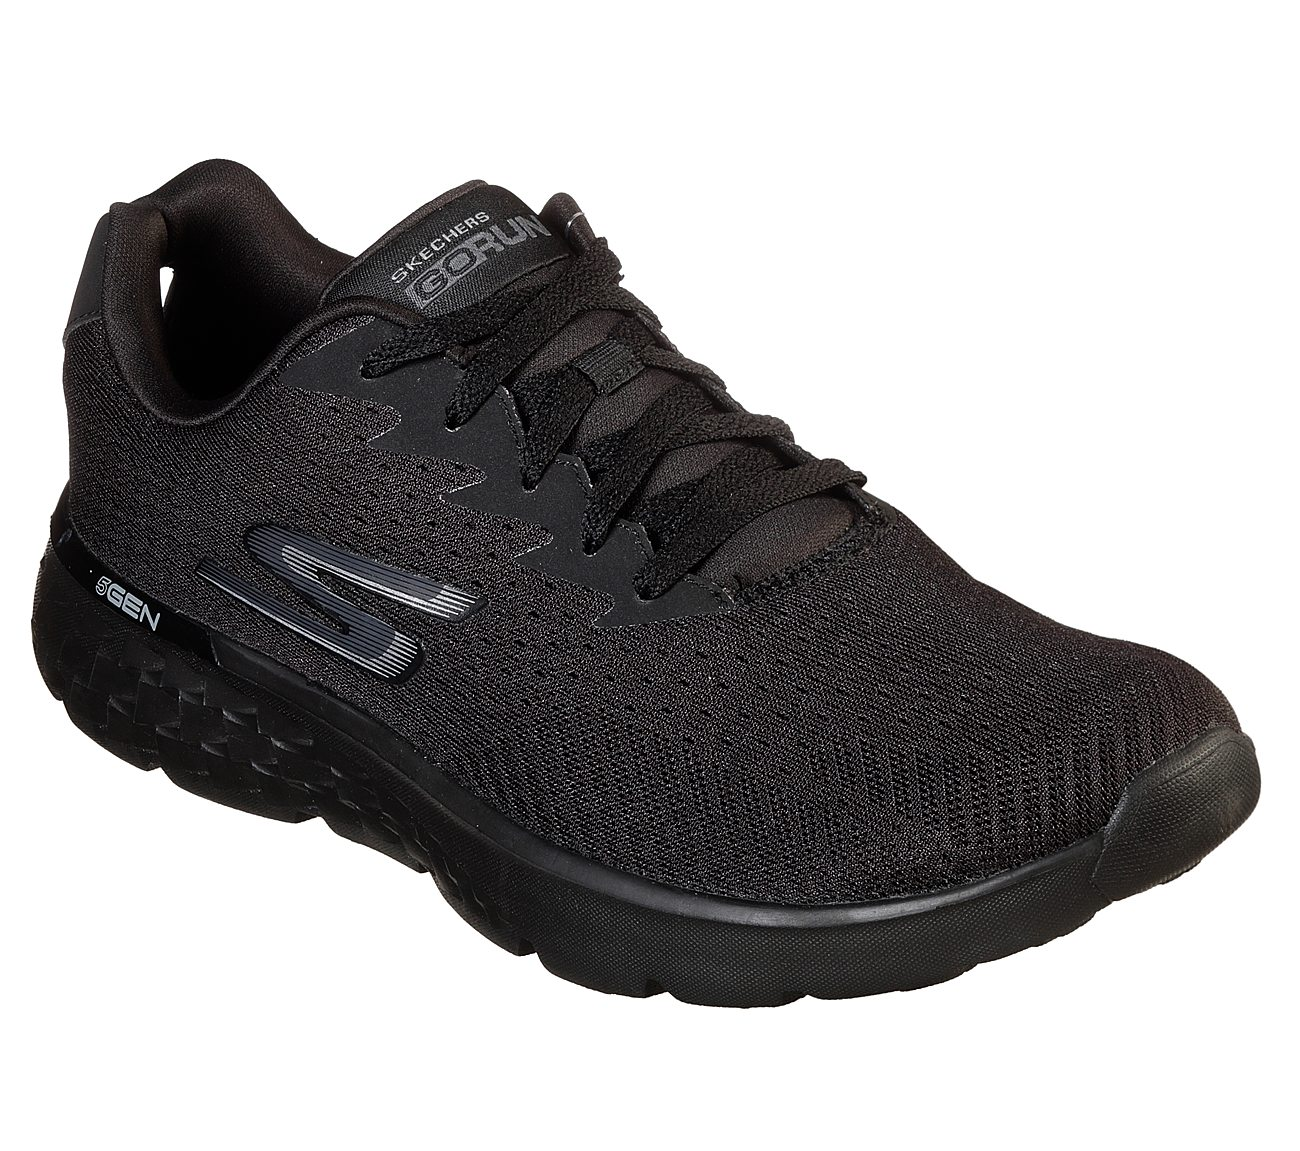 ffe44f2f15bc0 Buy SKECHERS Skechers GOrun 400 - Generate Skechers Performance ...